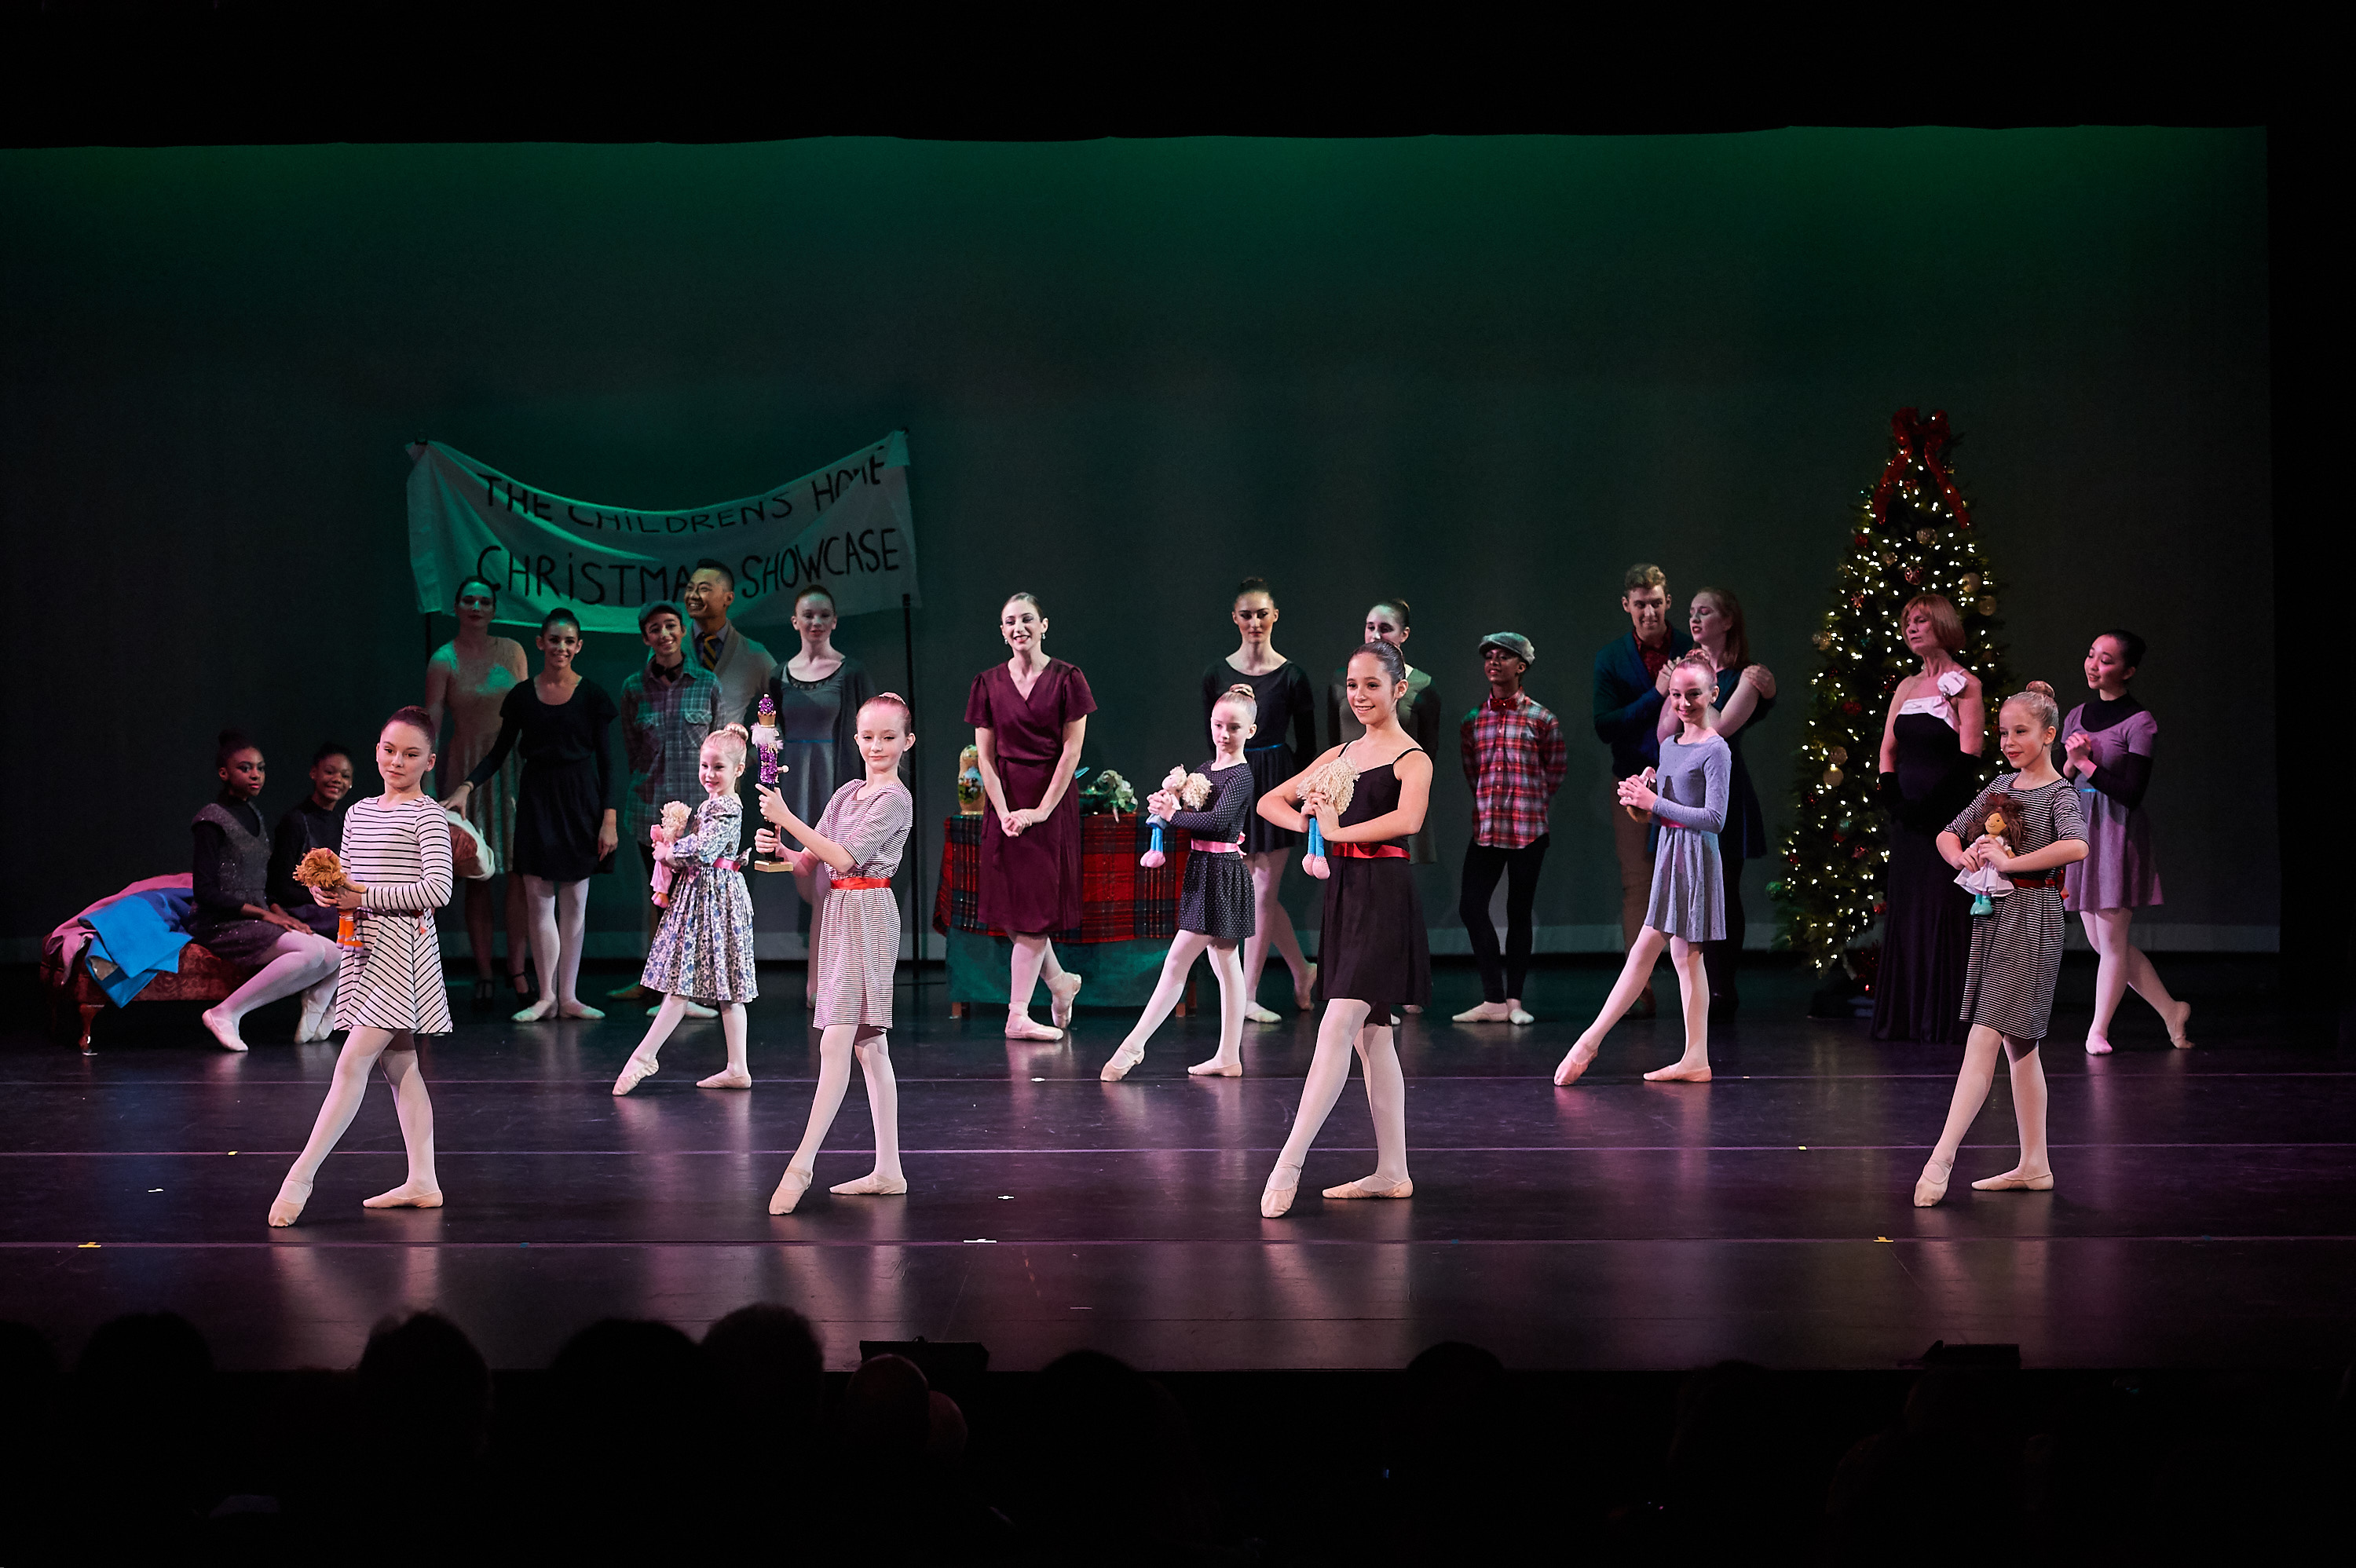 20171202_NYDance_Nutcracker_2pm_00698